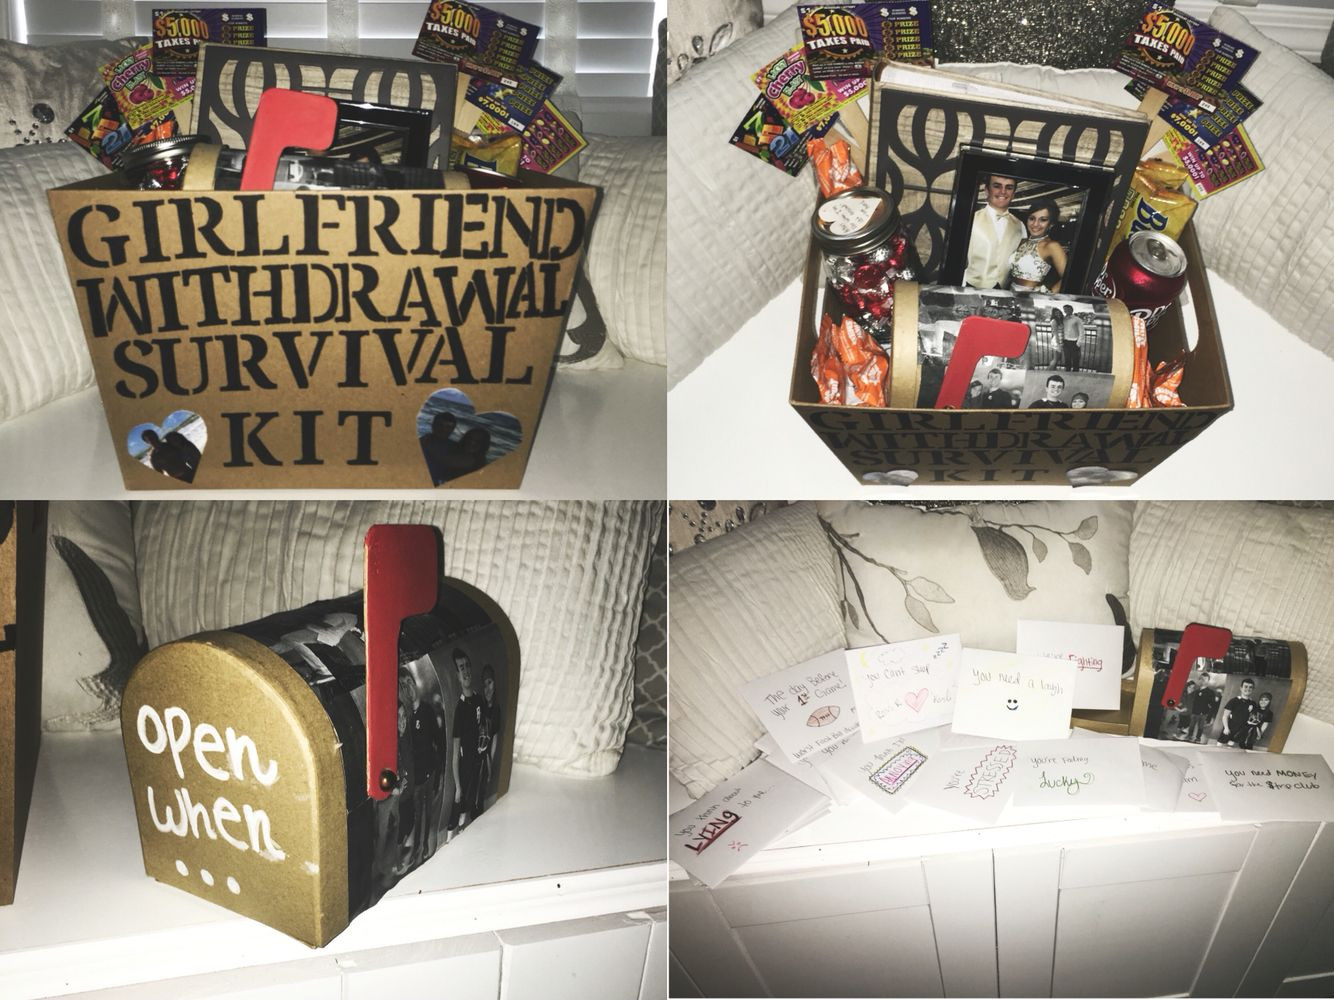 College Boyfriend Gift Ideas  Girlfriend withdrawal survival kit and open when letters